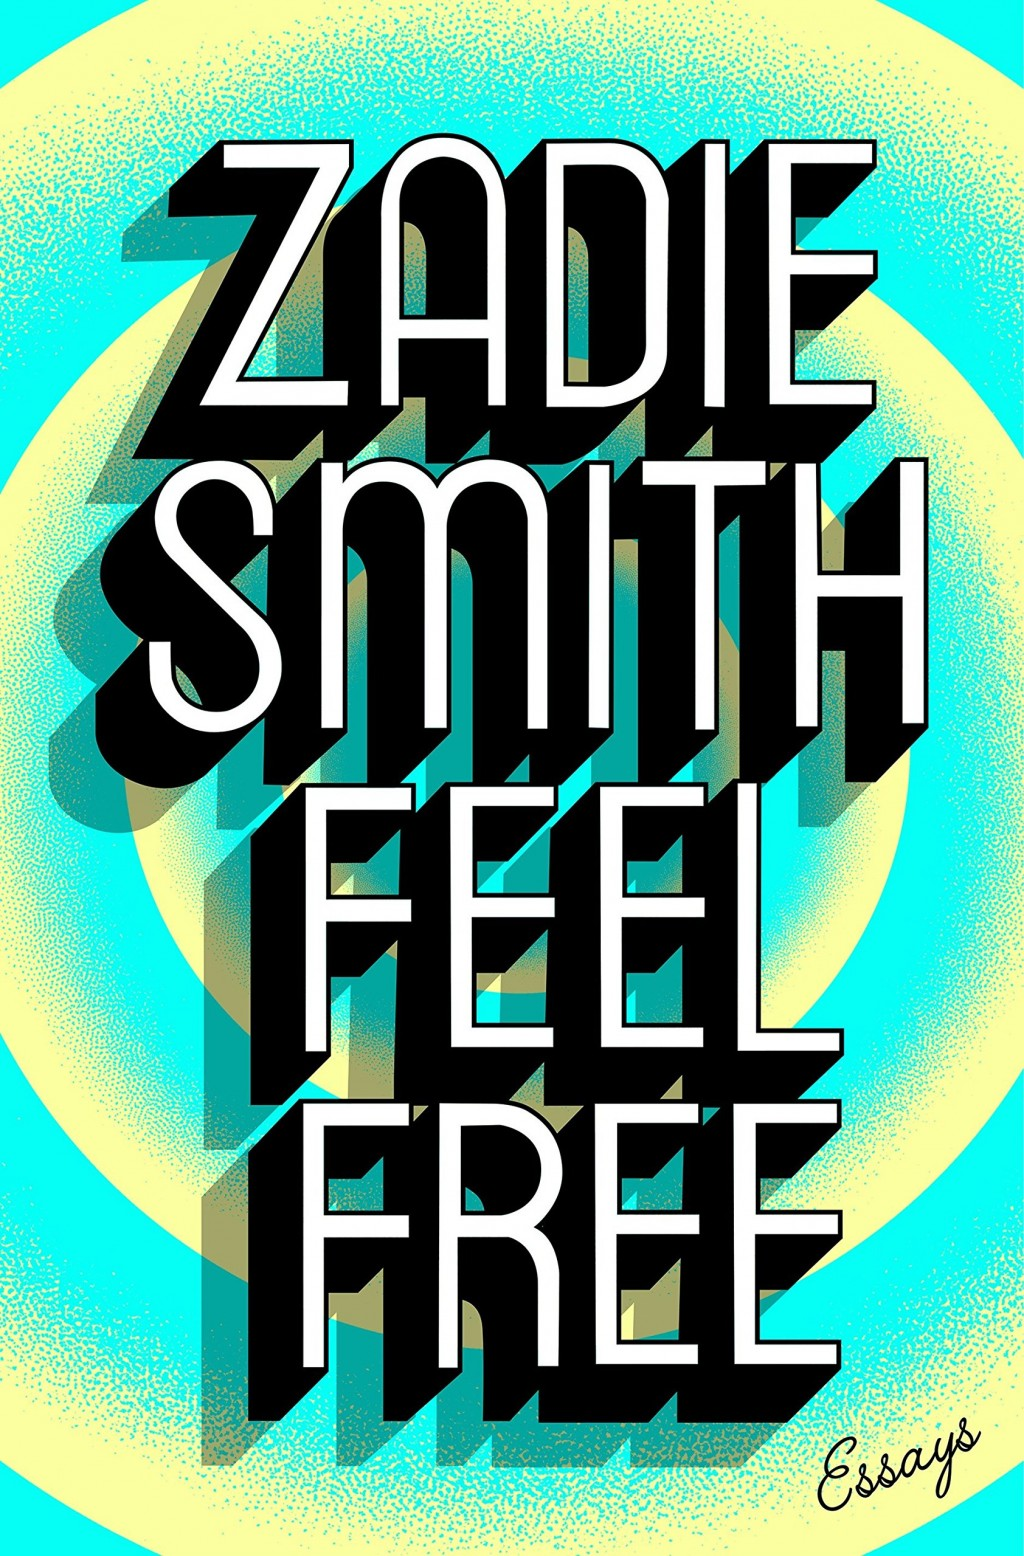 001 Essay Example Zadie Smith Essays Wonderful Amazon Radio 4 Large